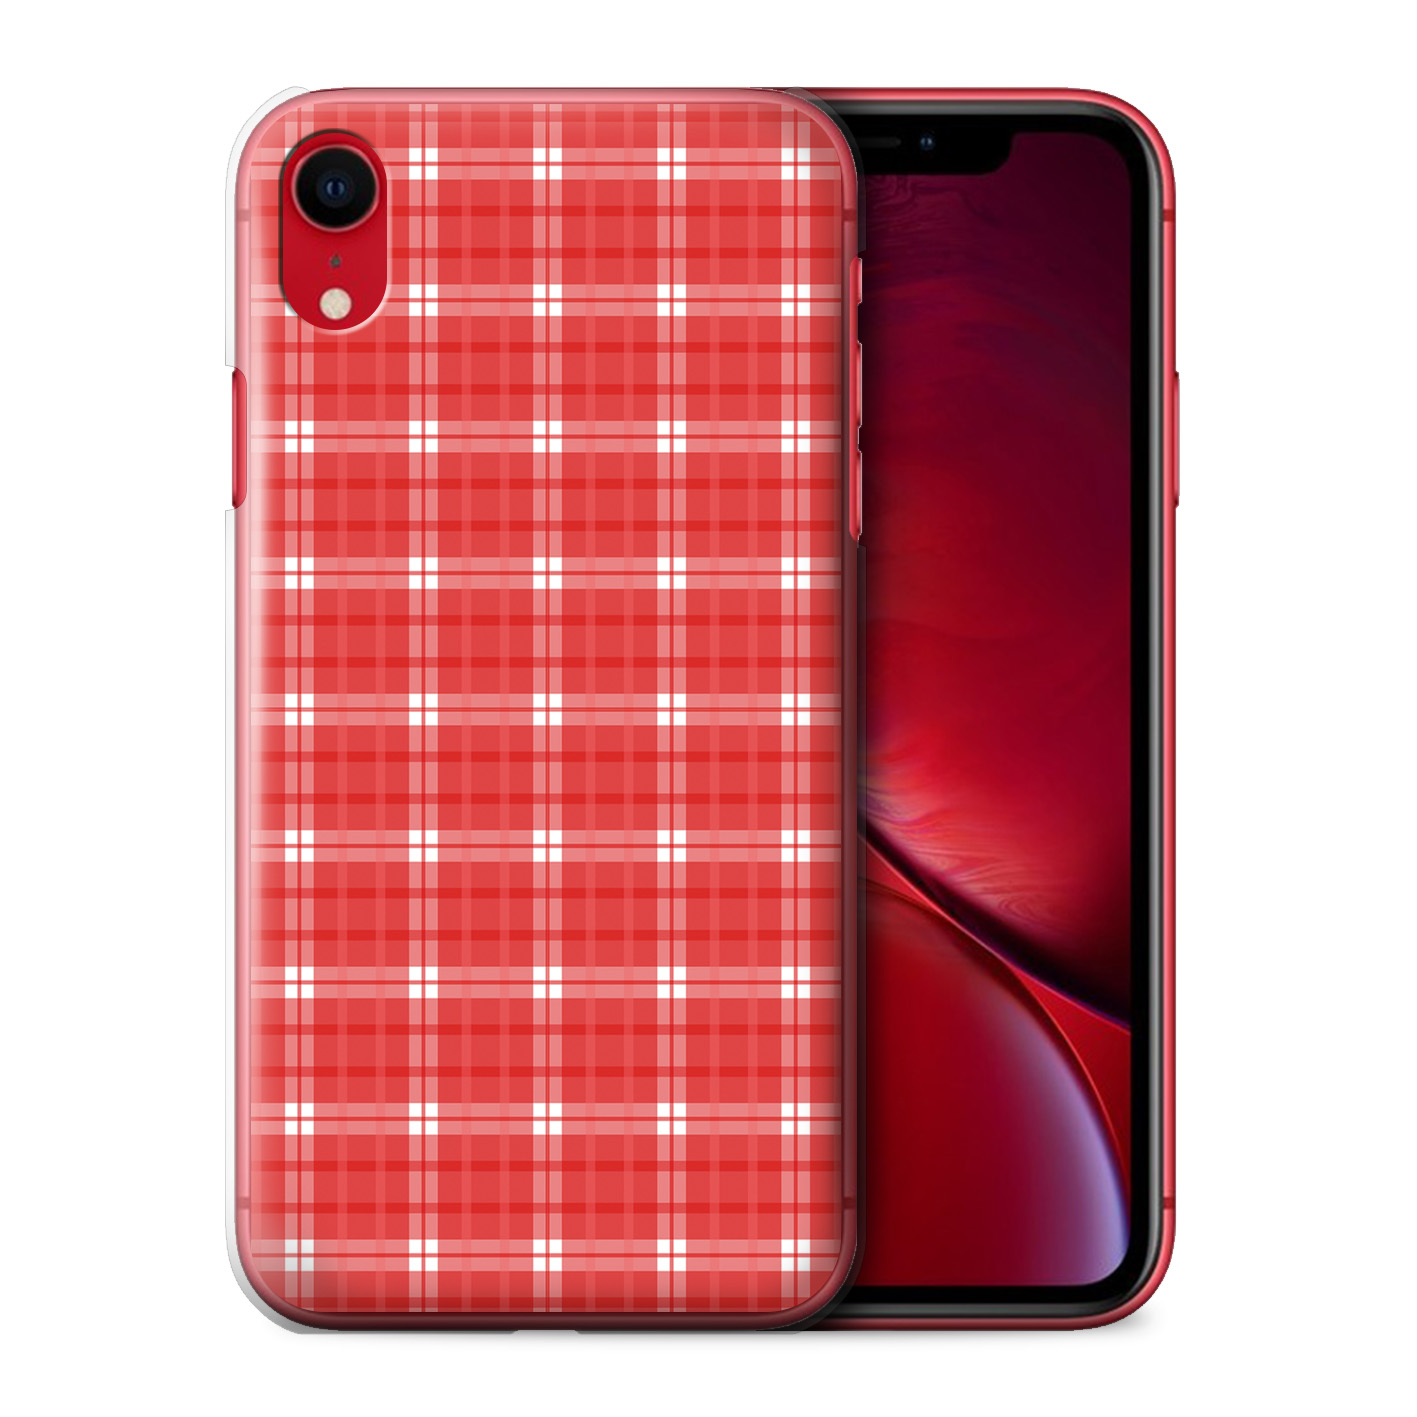 Stuff-4-Coque-Telephone-couverture-arriere-pour-Apple-iPhone-XR-ROUGE-fashion